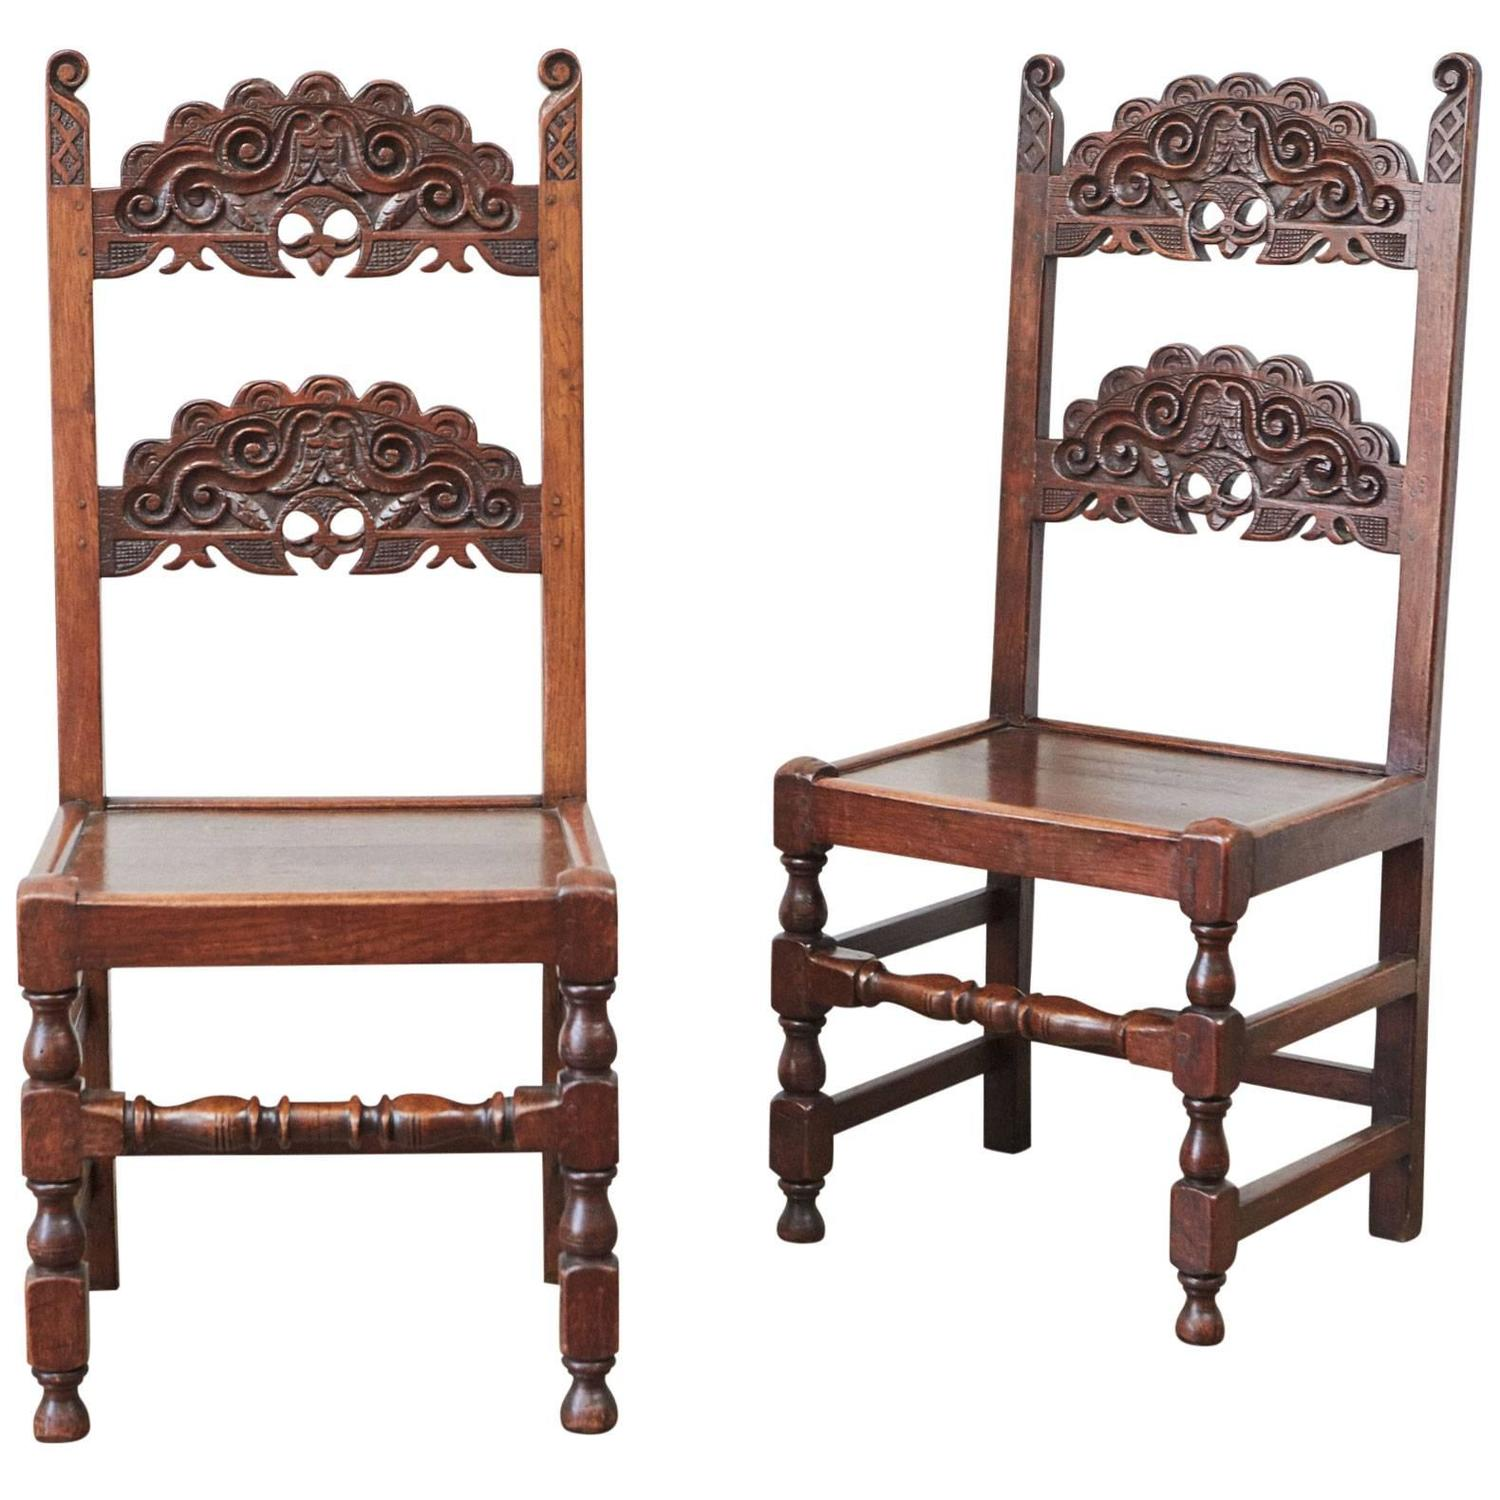 Ordinaire Pair Of Spanish Colonial Style Carved Side Chairs For Sale At 1stdibs